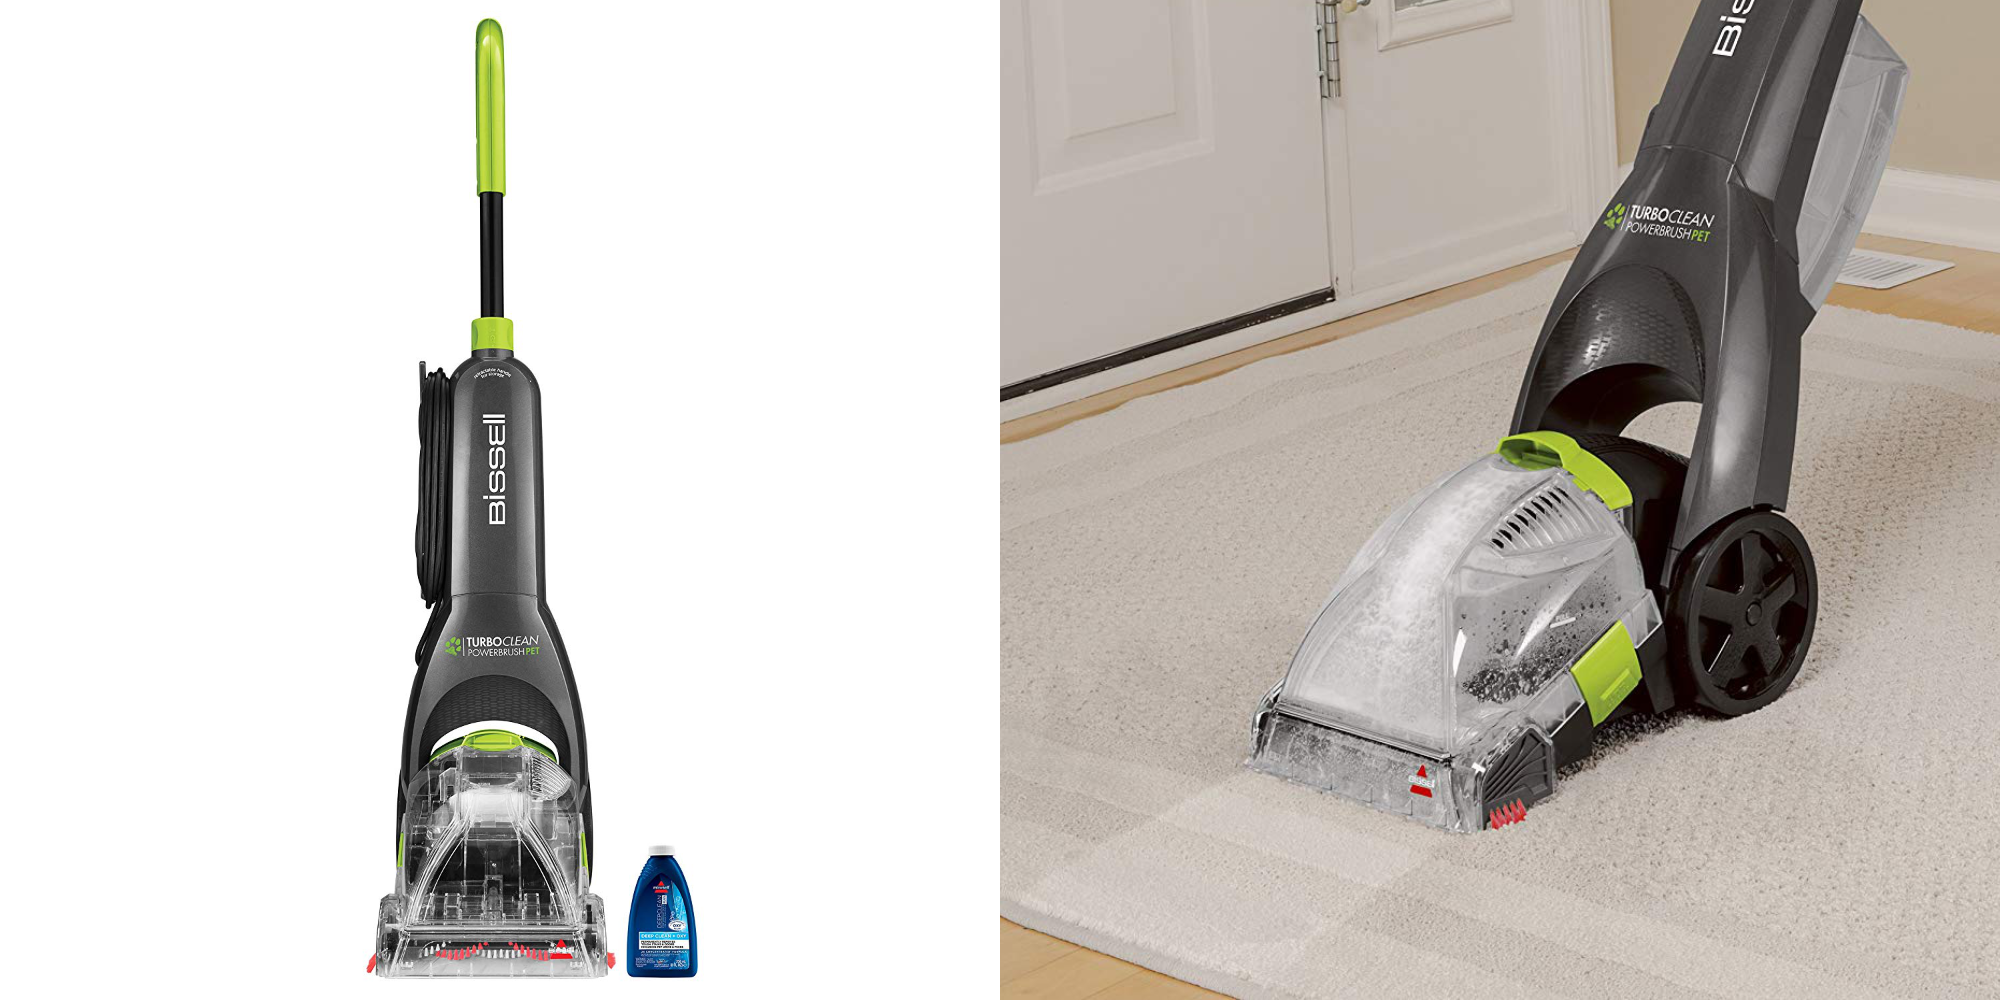 Bissell S Powerbrush Carpet Cleaner Is Made To Eliminate